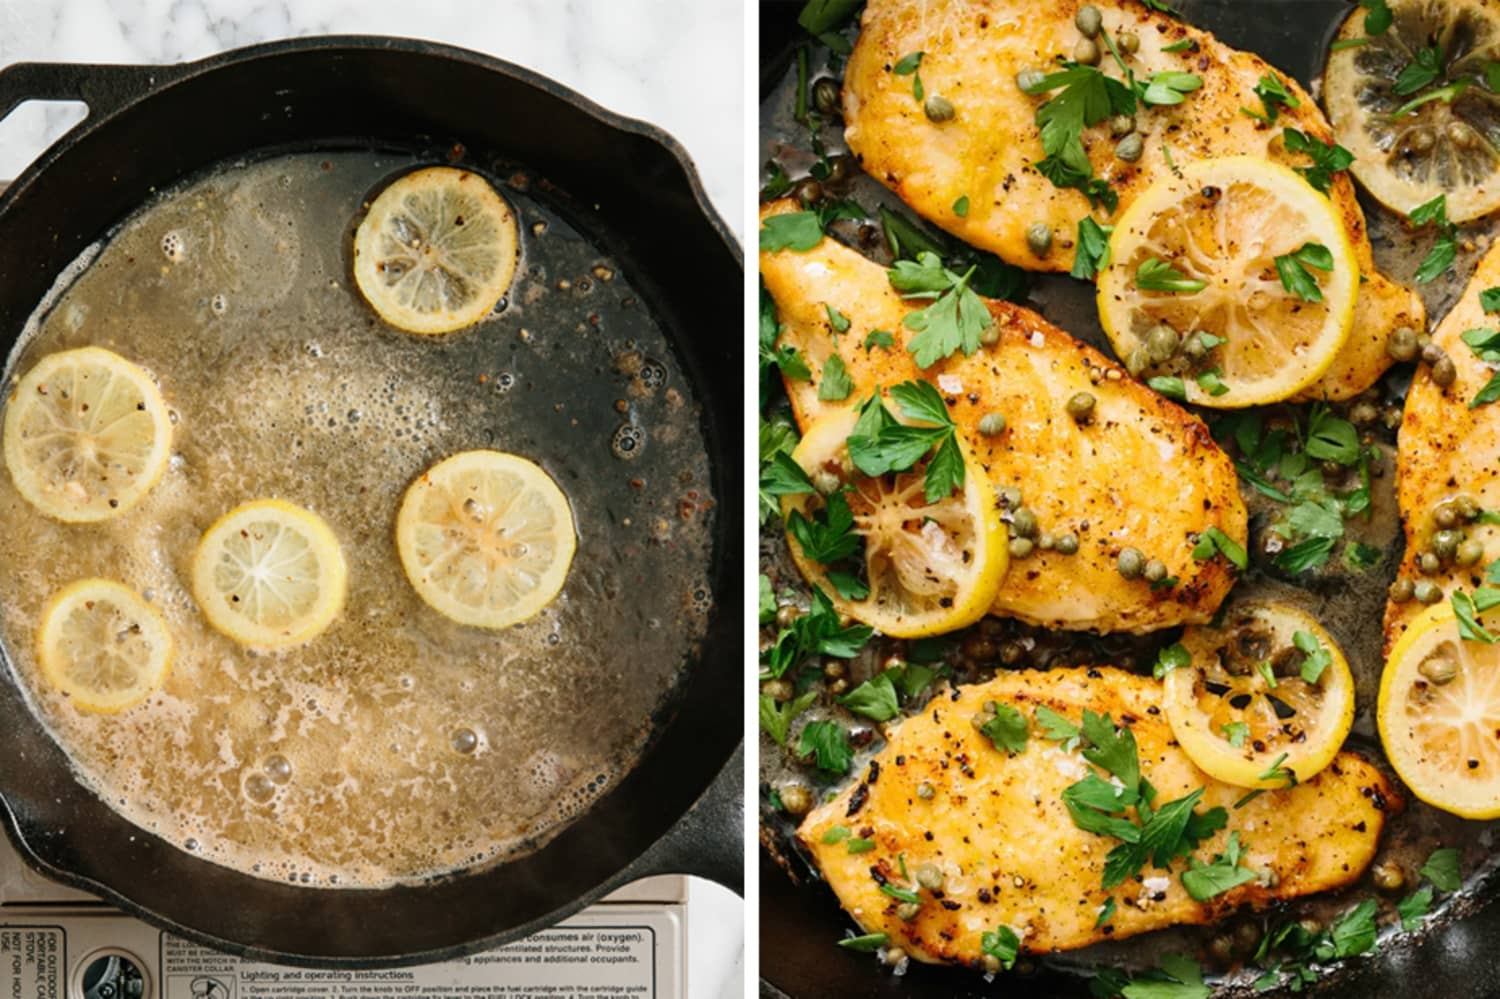 Treat Yourself to This Italian-American Lemon-Butter Chicken Piccata